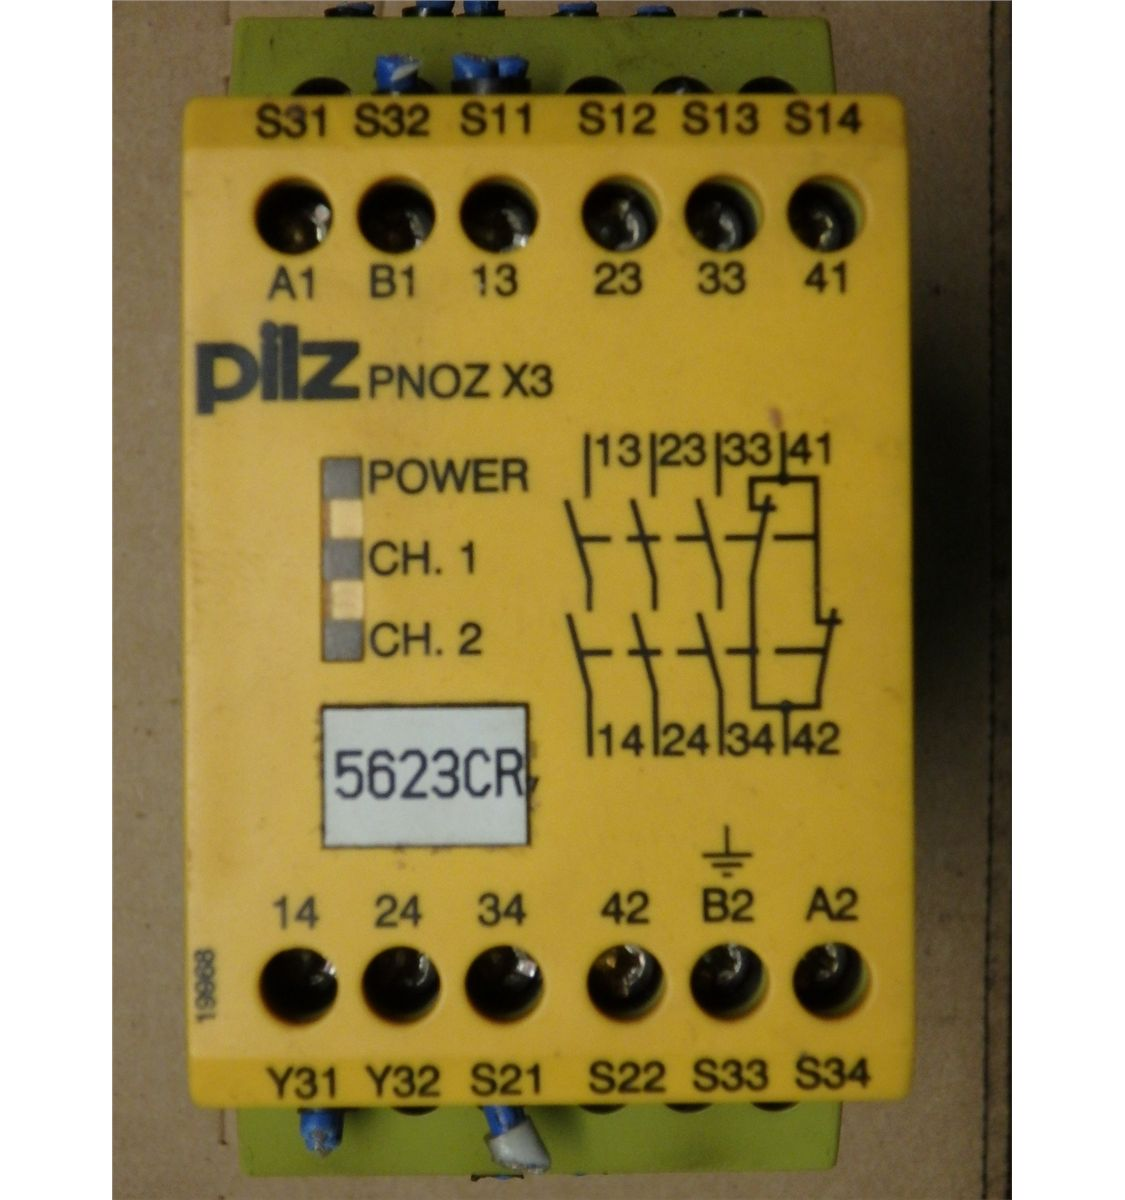 Pilz Safety Relay Wiring Diagram Industry Insights Make Existing Pnoz X Examples Image X3 On